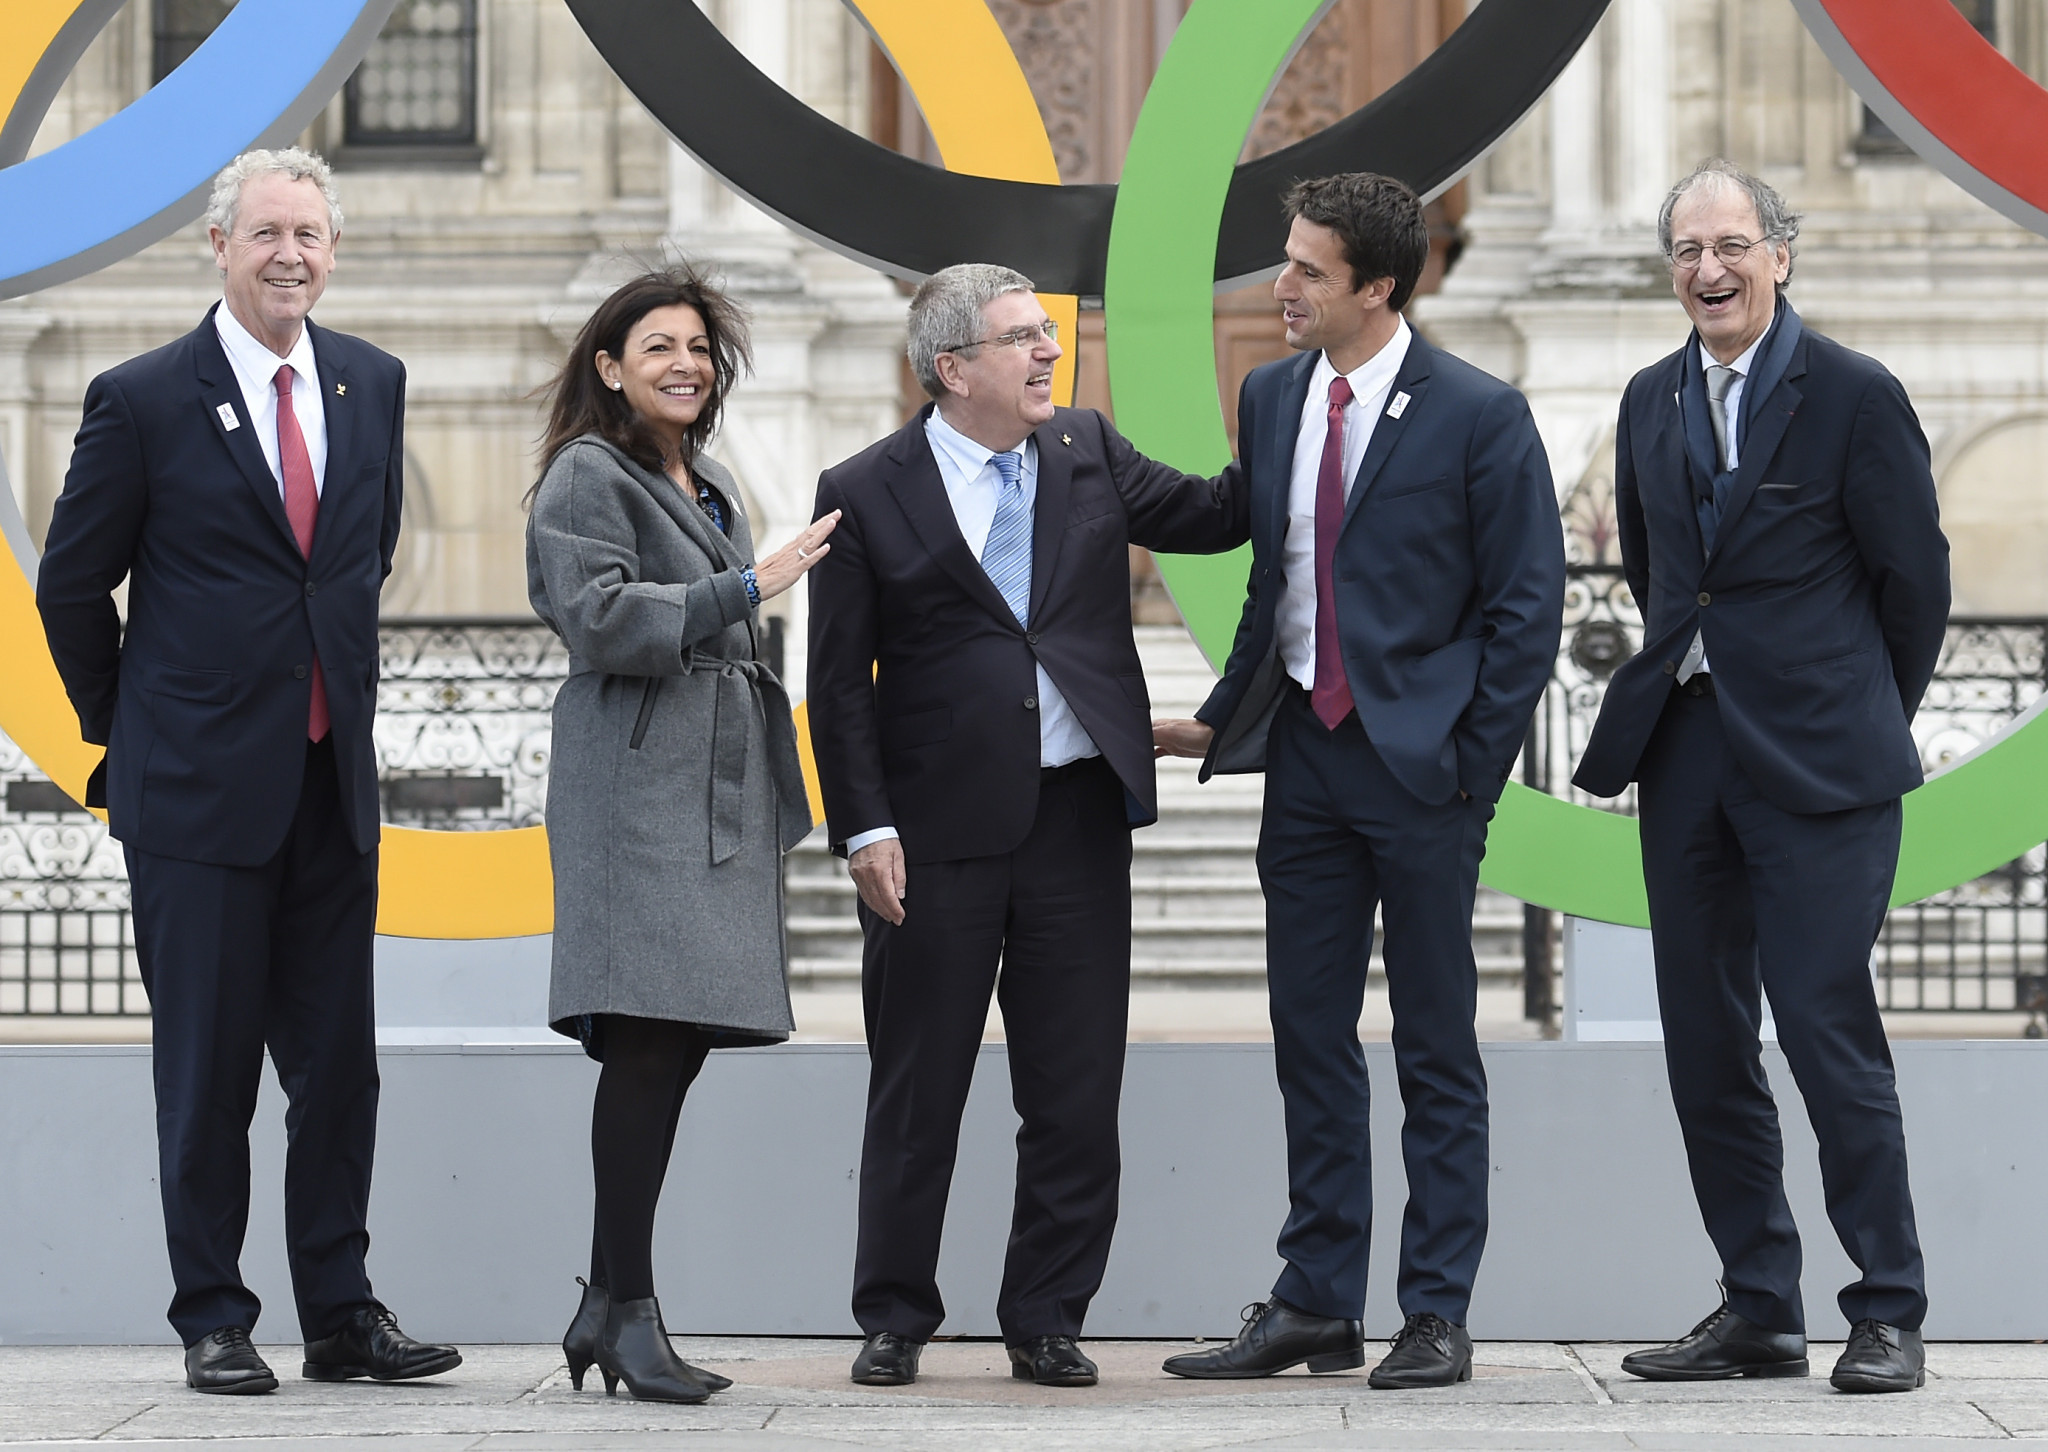 Tony Estanguet, second right, pictured with officials include IOC President Thomas Bach, centre, and Paris Mayor Anne Hidalgo, second left ©Getty Images